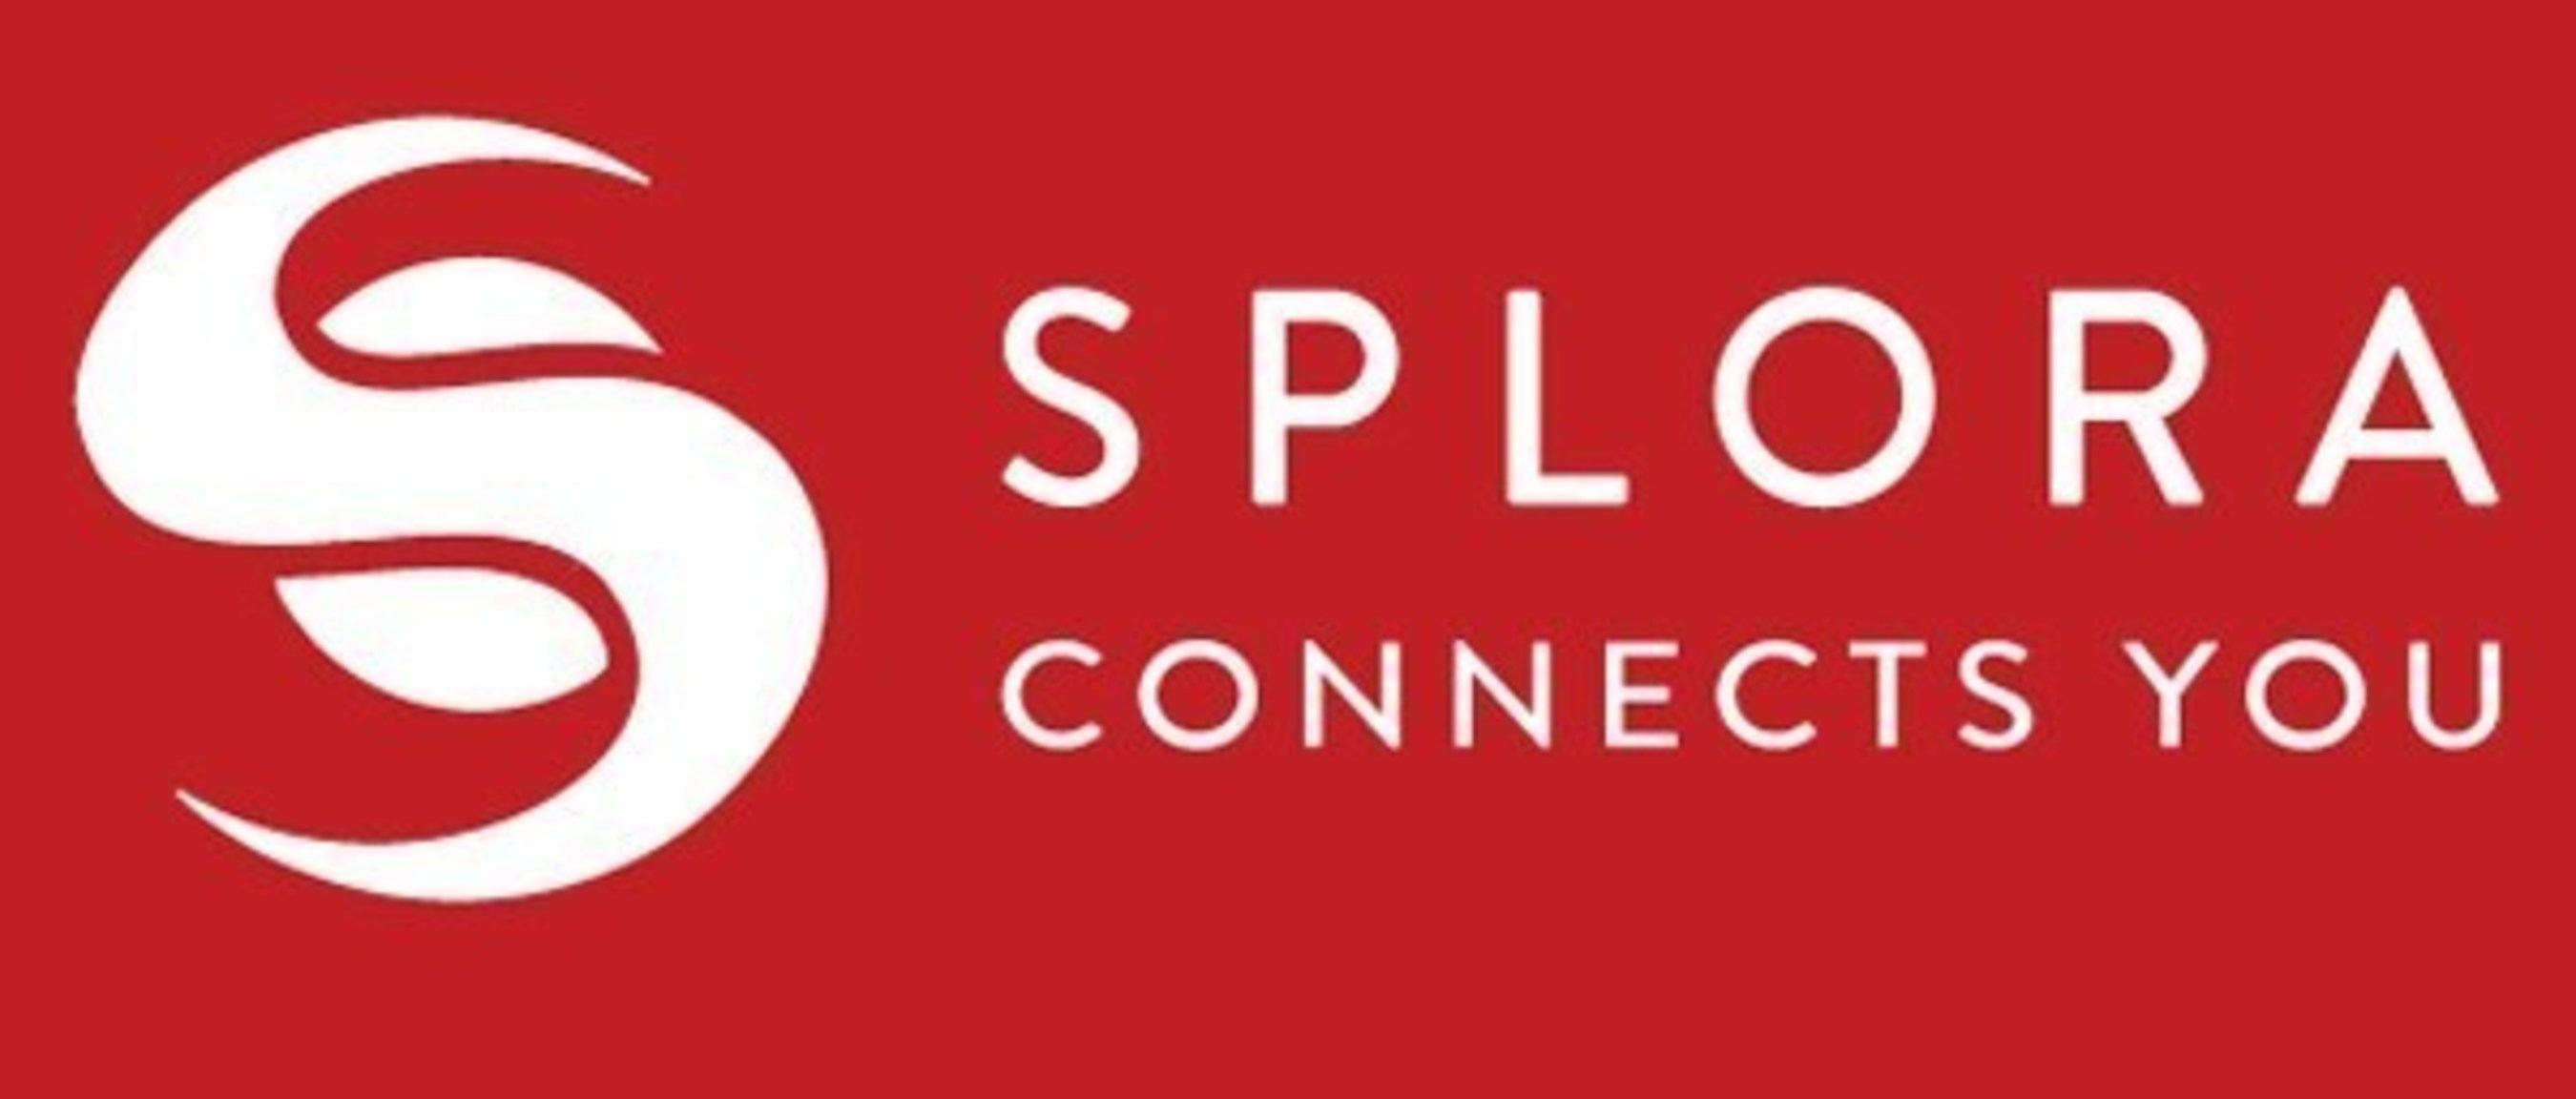 Splora Announces Free Phone Calls for Beta Testing Launch